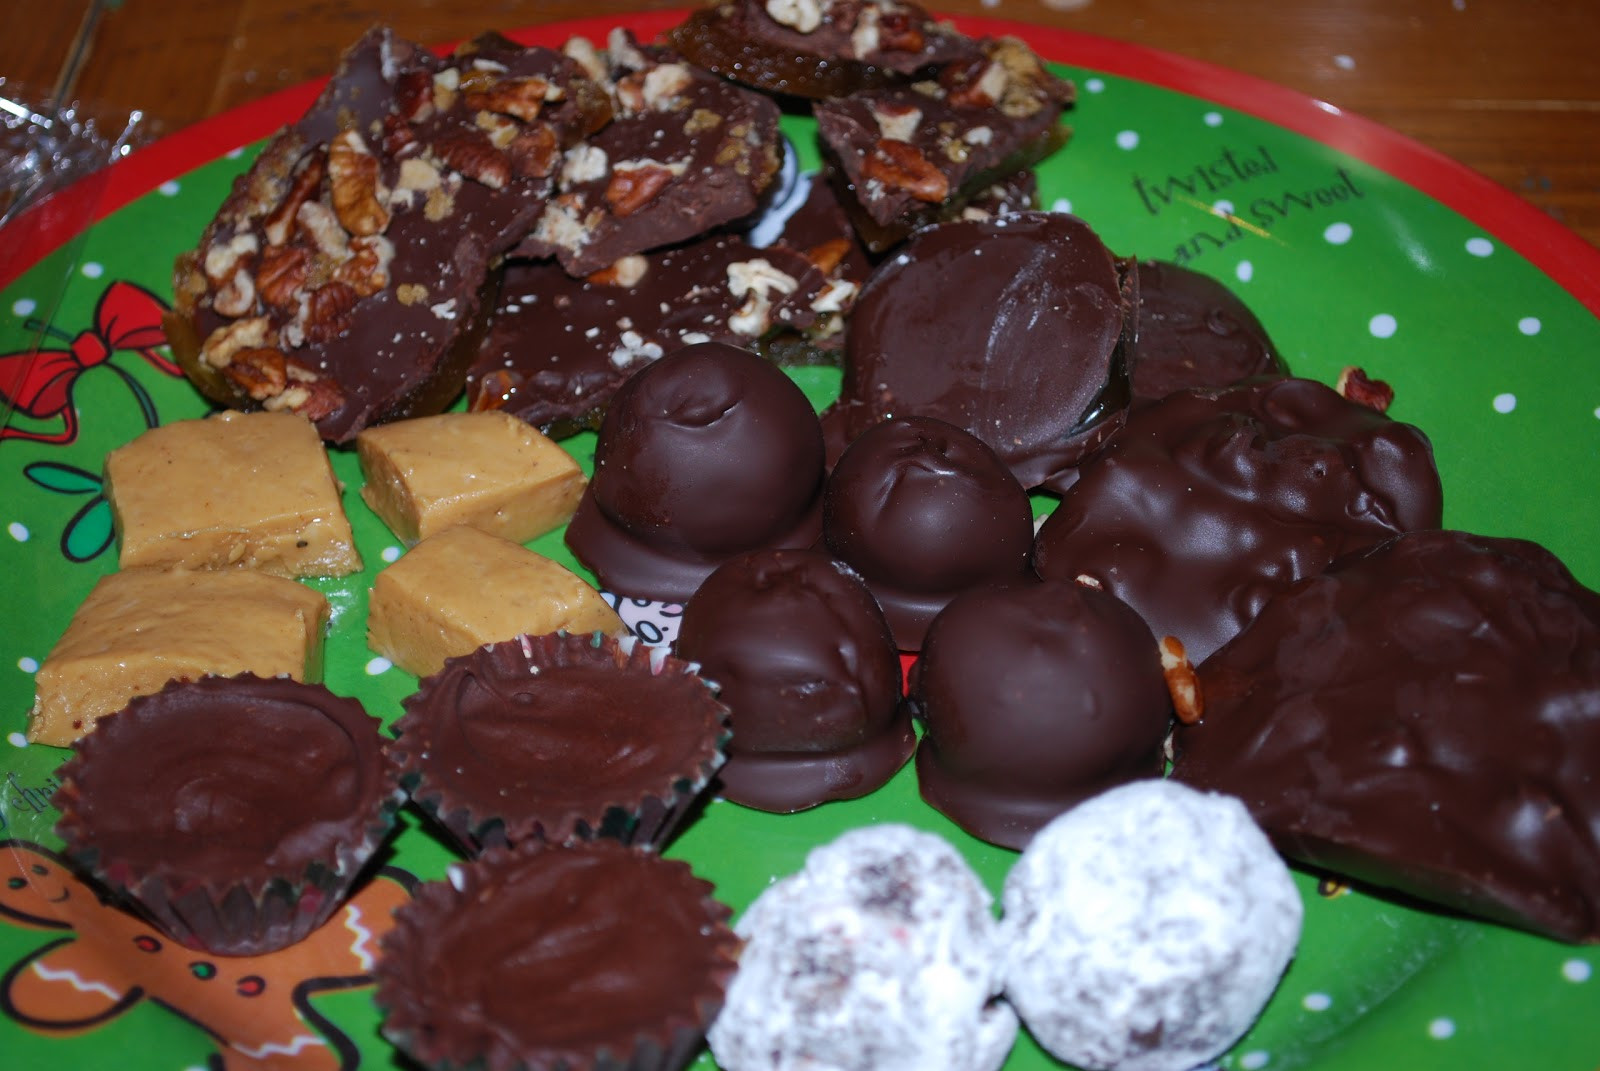 Recipes For Christmas Candy  The Peaceful Kitchen Delicious Vegan Christmas Candy Recipes